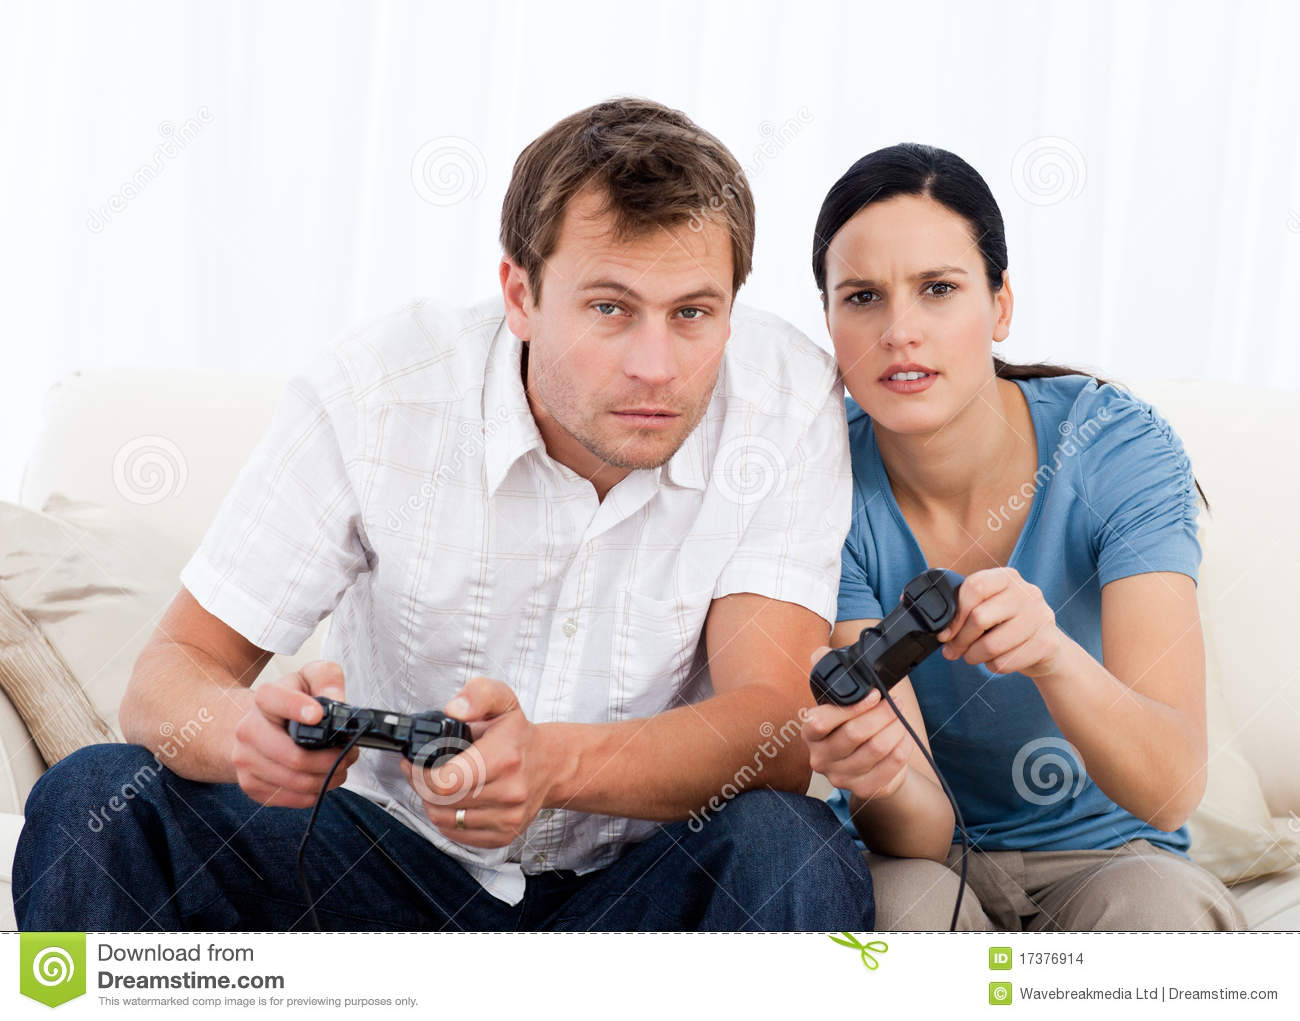 Concentrated Couple Playing Video Games Together Stock  : concentrated couple playing video games together 17376914 from www.dreamstime.com size 1300 x 1021 jpeg 127kB